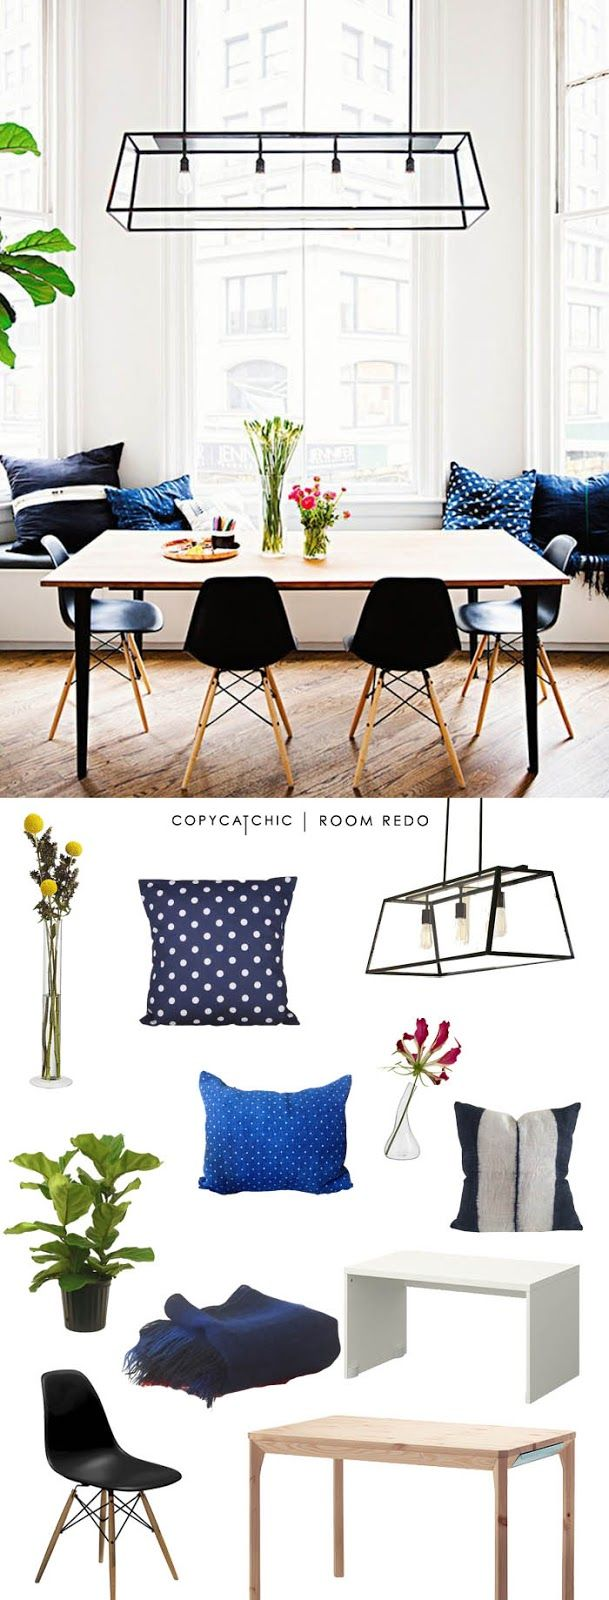 120 best dining room lighting ideas images on pinterest dining copy cat chic copy cat chic room redo indigo dining room by lindseyboyer